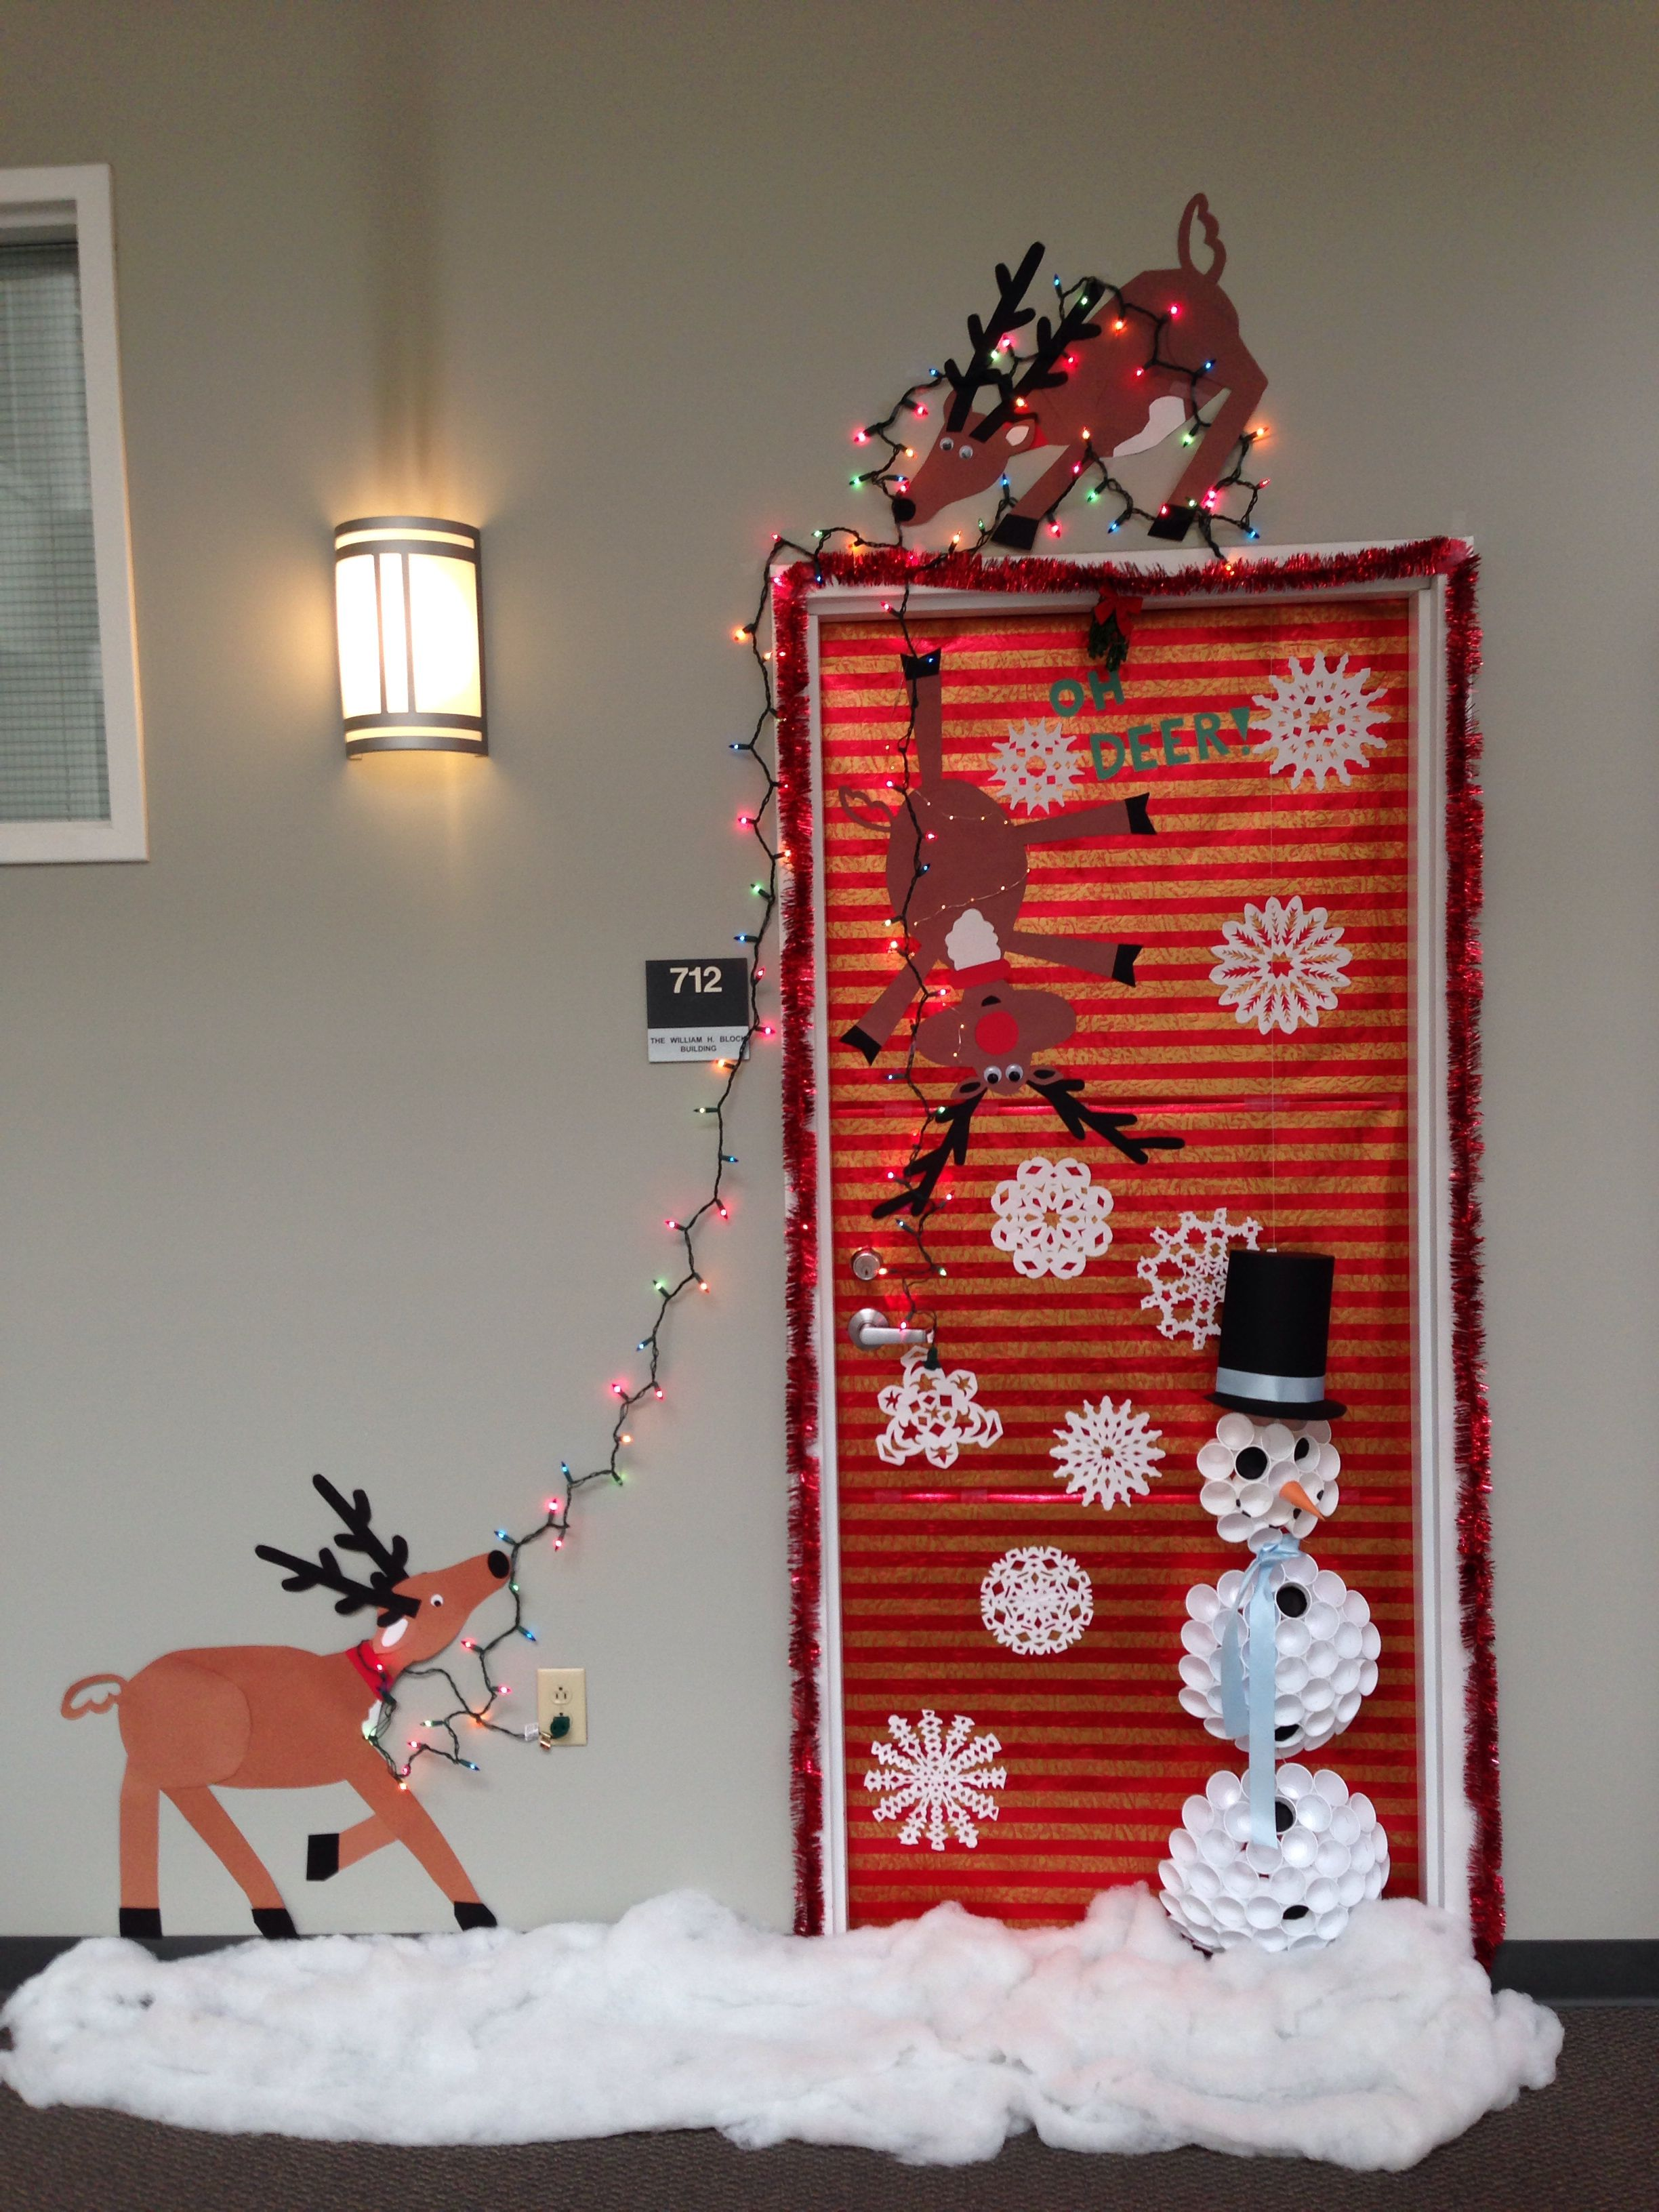 Our Christmas Door Decoration First Place Made Snowman With Dixie Cups Reindeer From Construction Paper Snow Sewing Fluff